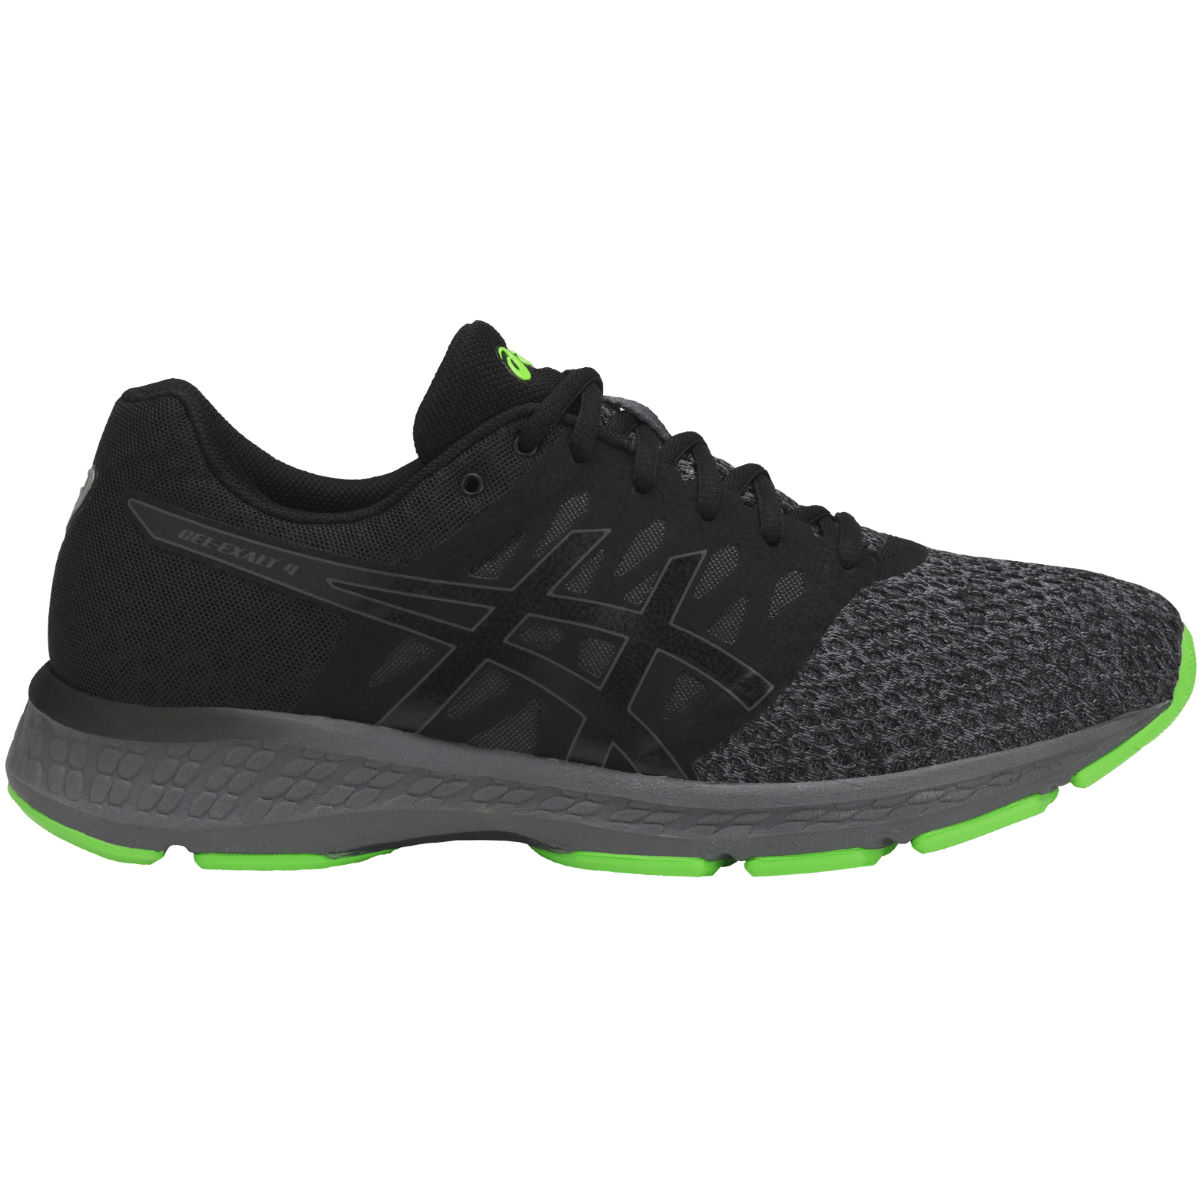 Chaussures Asics Gel-Exalt - UK 7 BLACK/CARBON/GREEN G